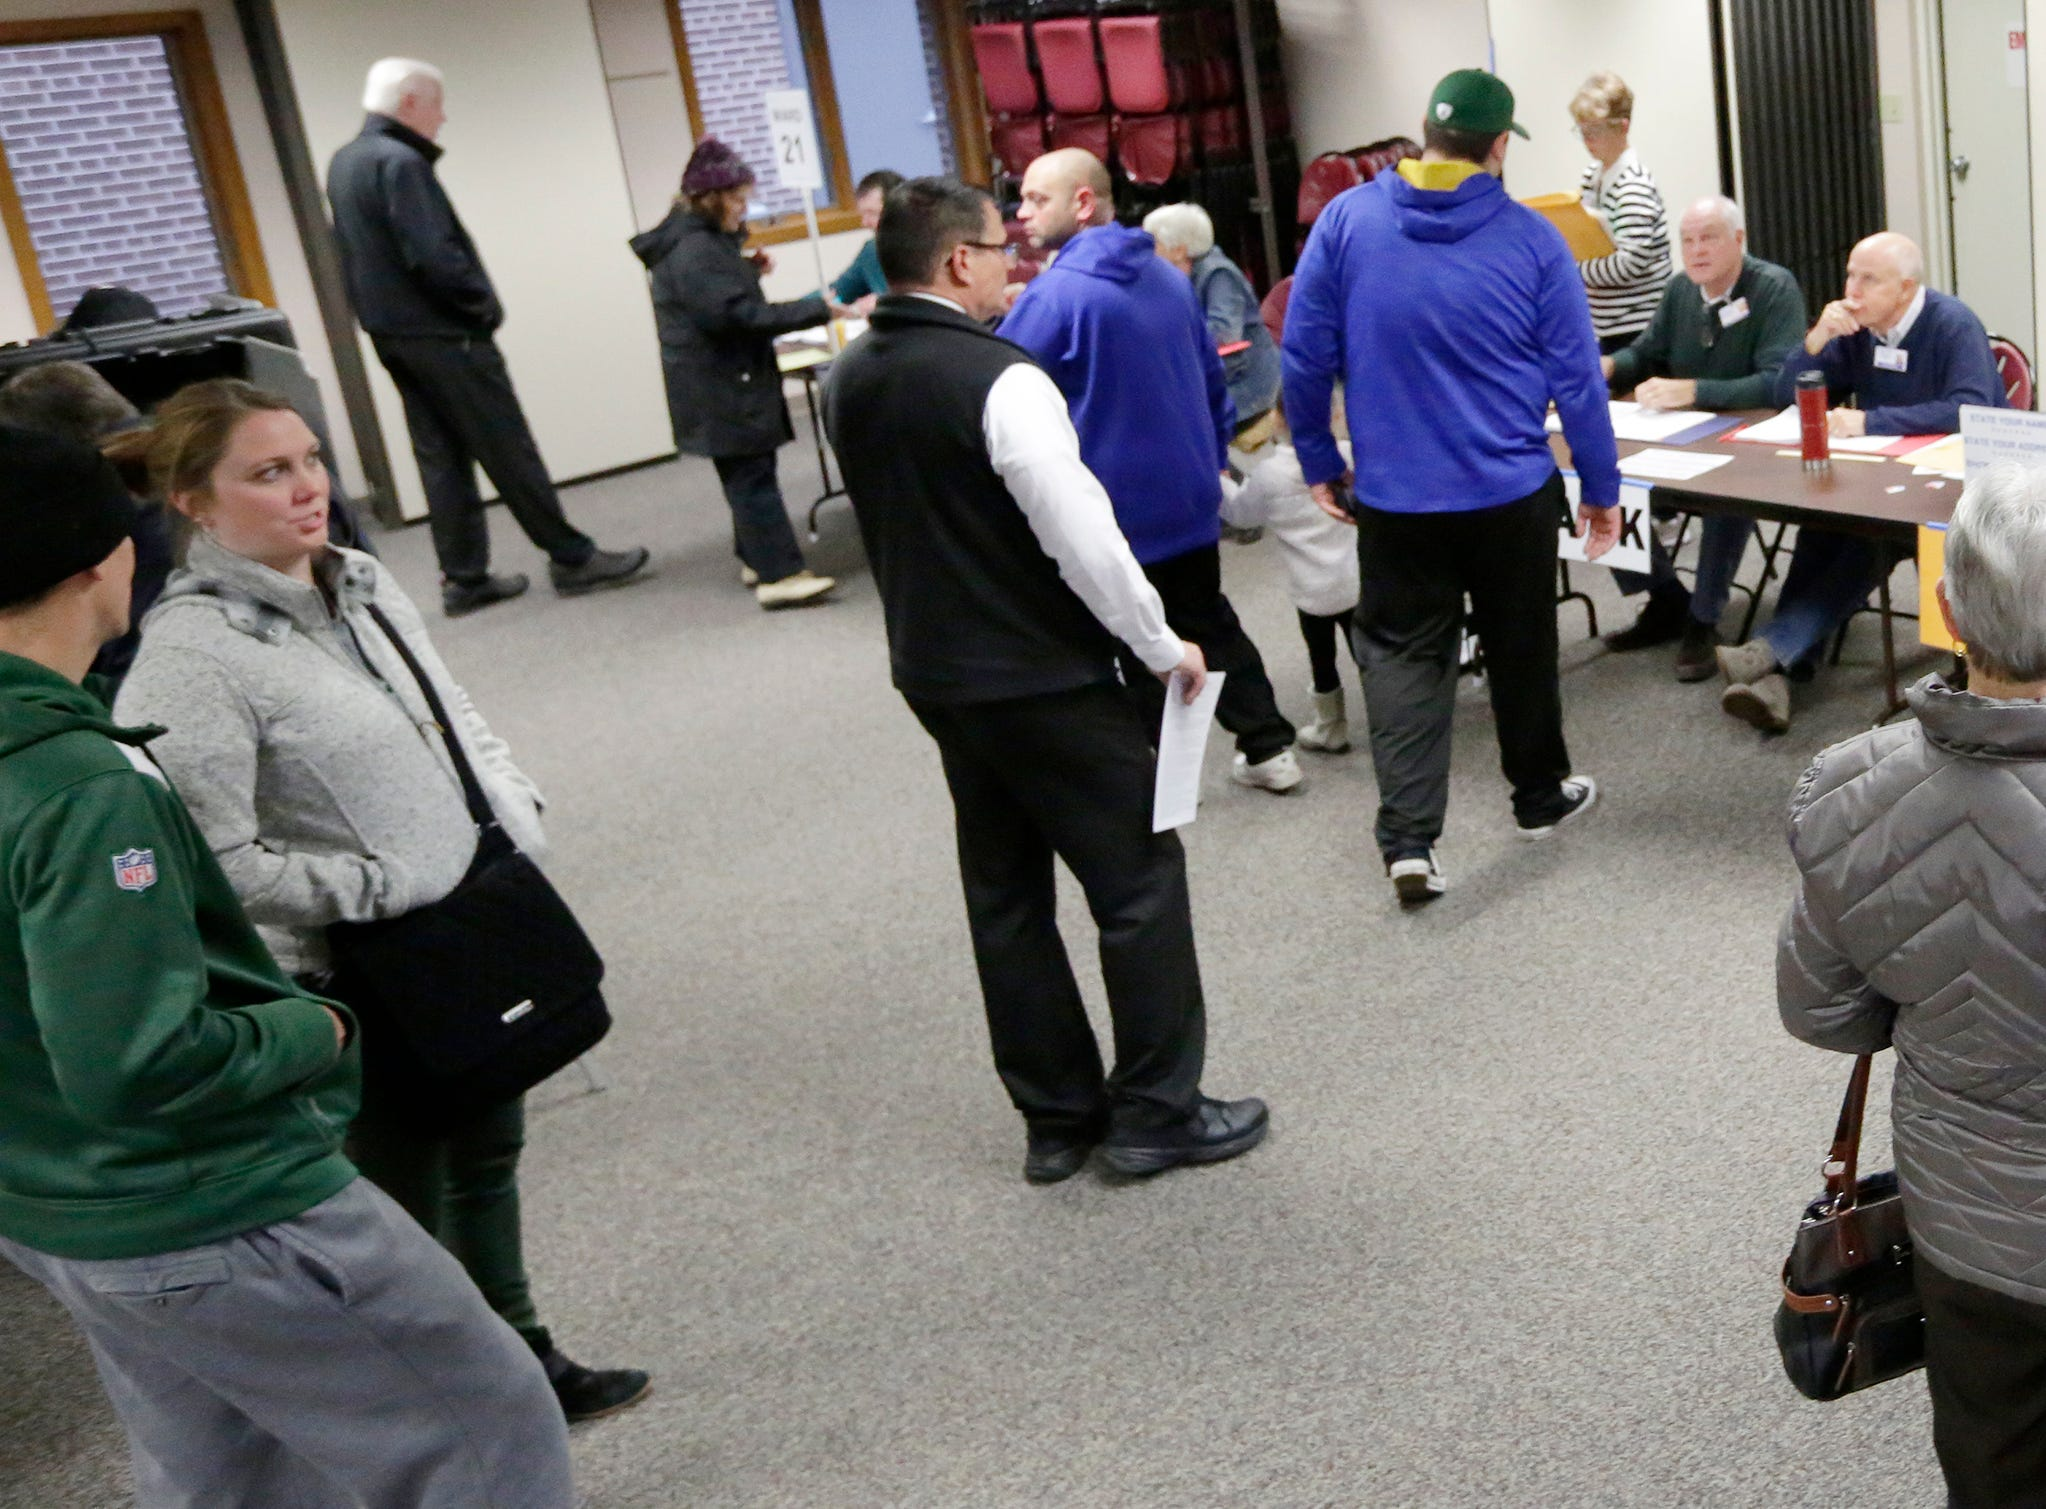 Voters wait in line at voting district 10 at Calvary Lutheran Church.  The mid-term voting kept poll workers busy as voters waited in lines at most polling stations in Oshkosh, Wis., Tuesday, November 6, 2018.  